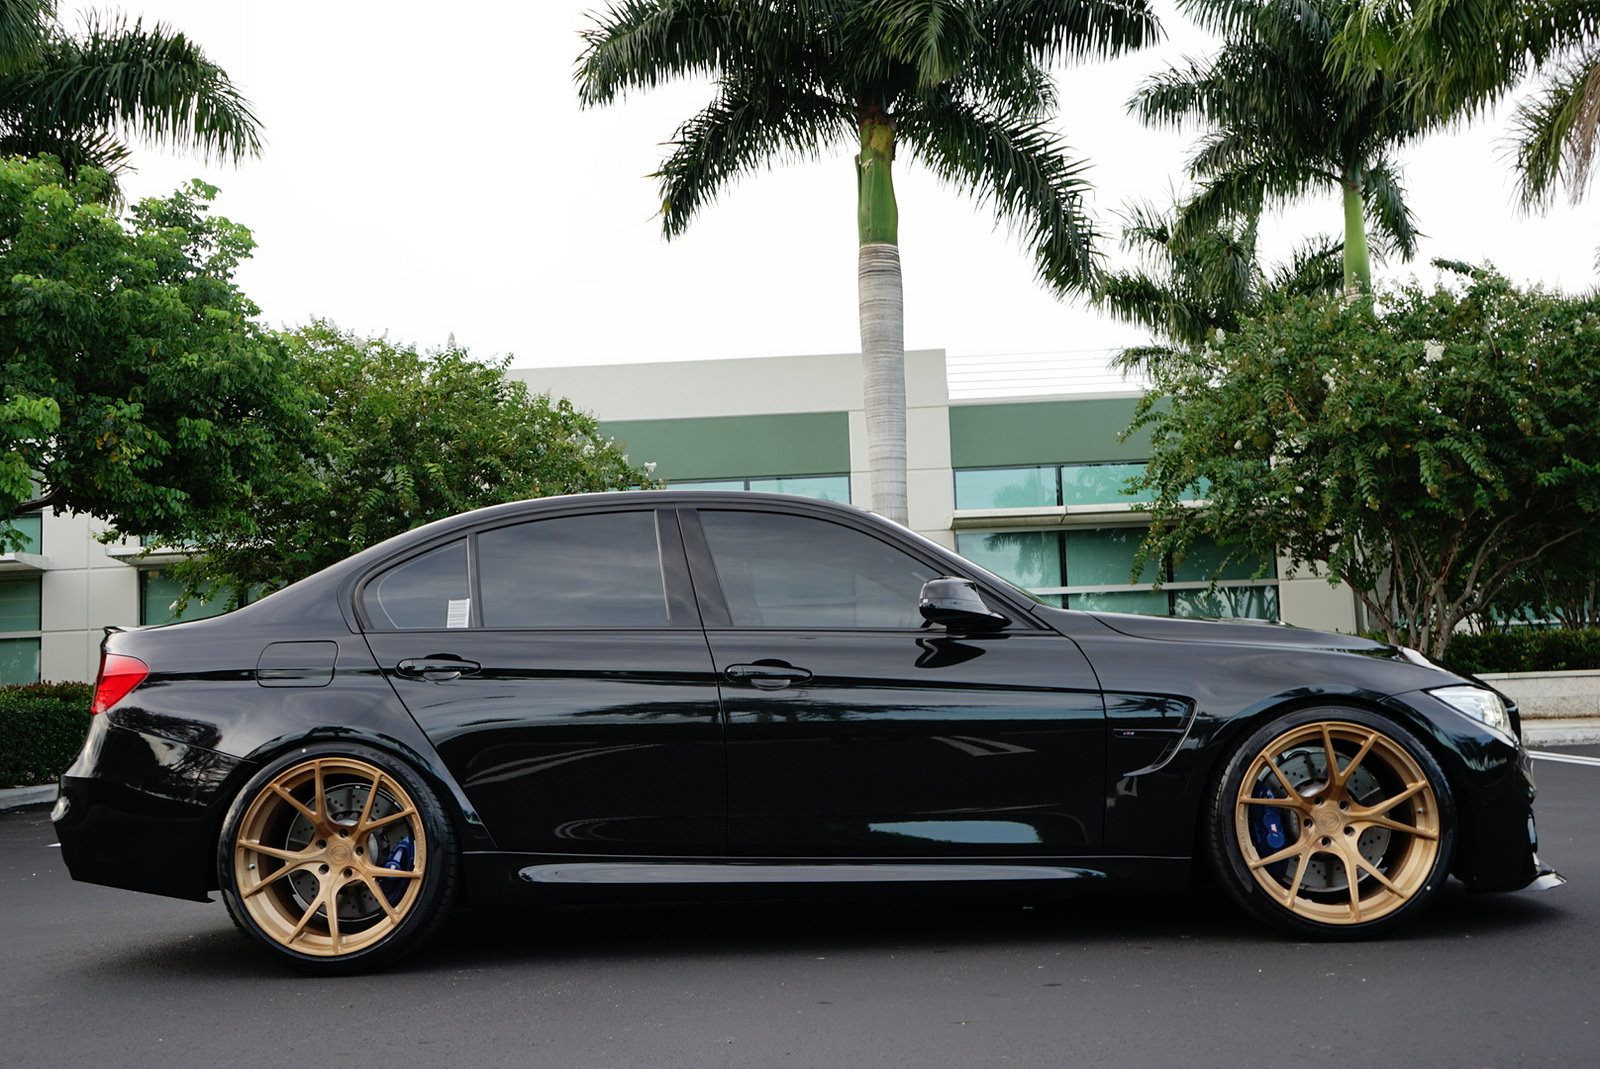 Sapphire Black F80 M3 On Velos S3 Forged Wheels Velos Designwerks Performance Tuning